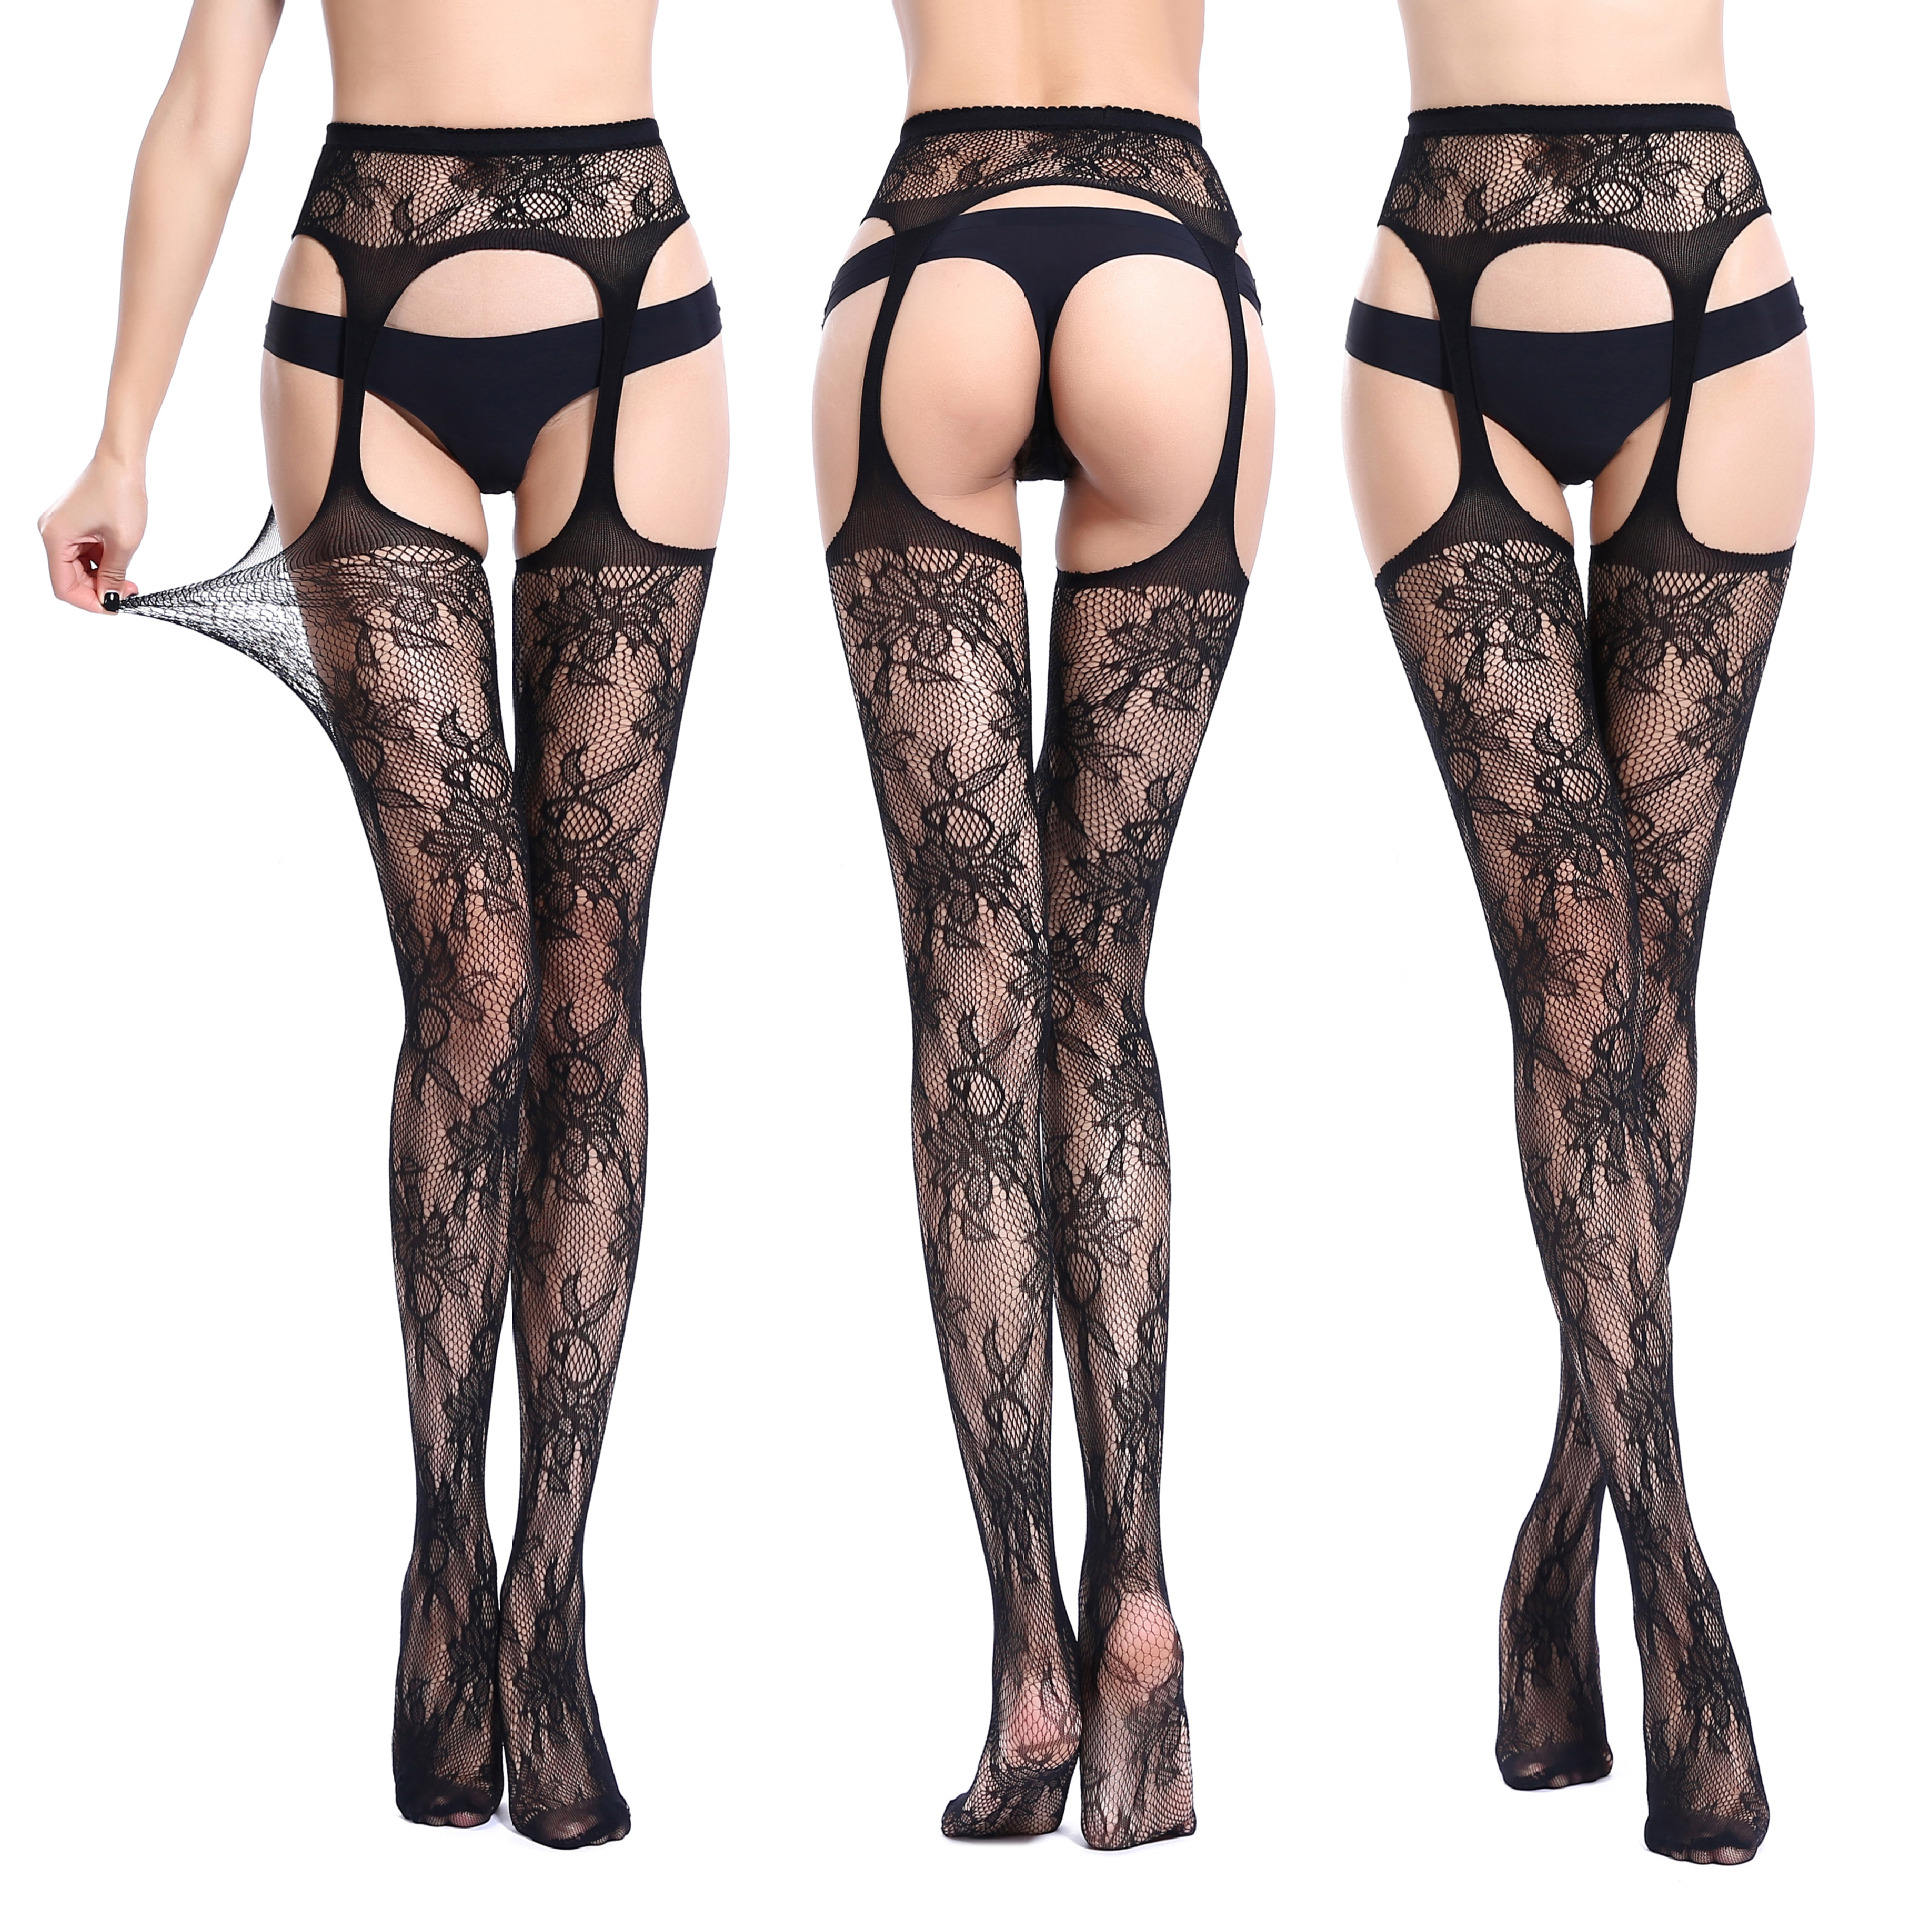 Women's Fishnet Suspender Cuban Heel Backseam Thigh High Top Stockings Black Hollow Out Floral Garter Belt Hosiery Pantyhose